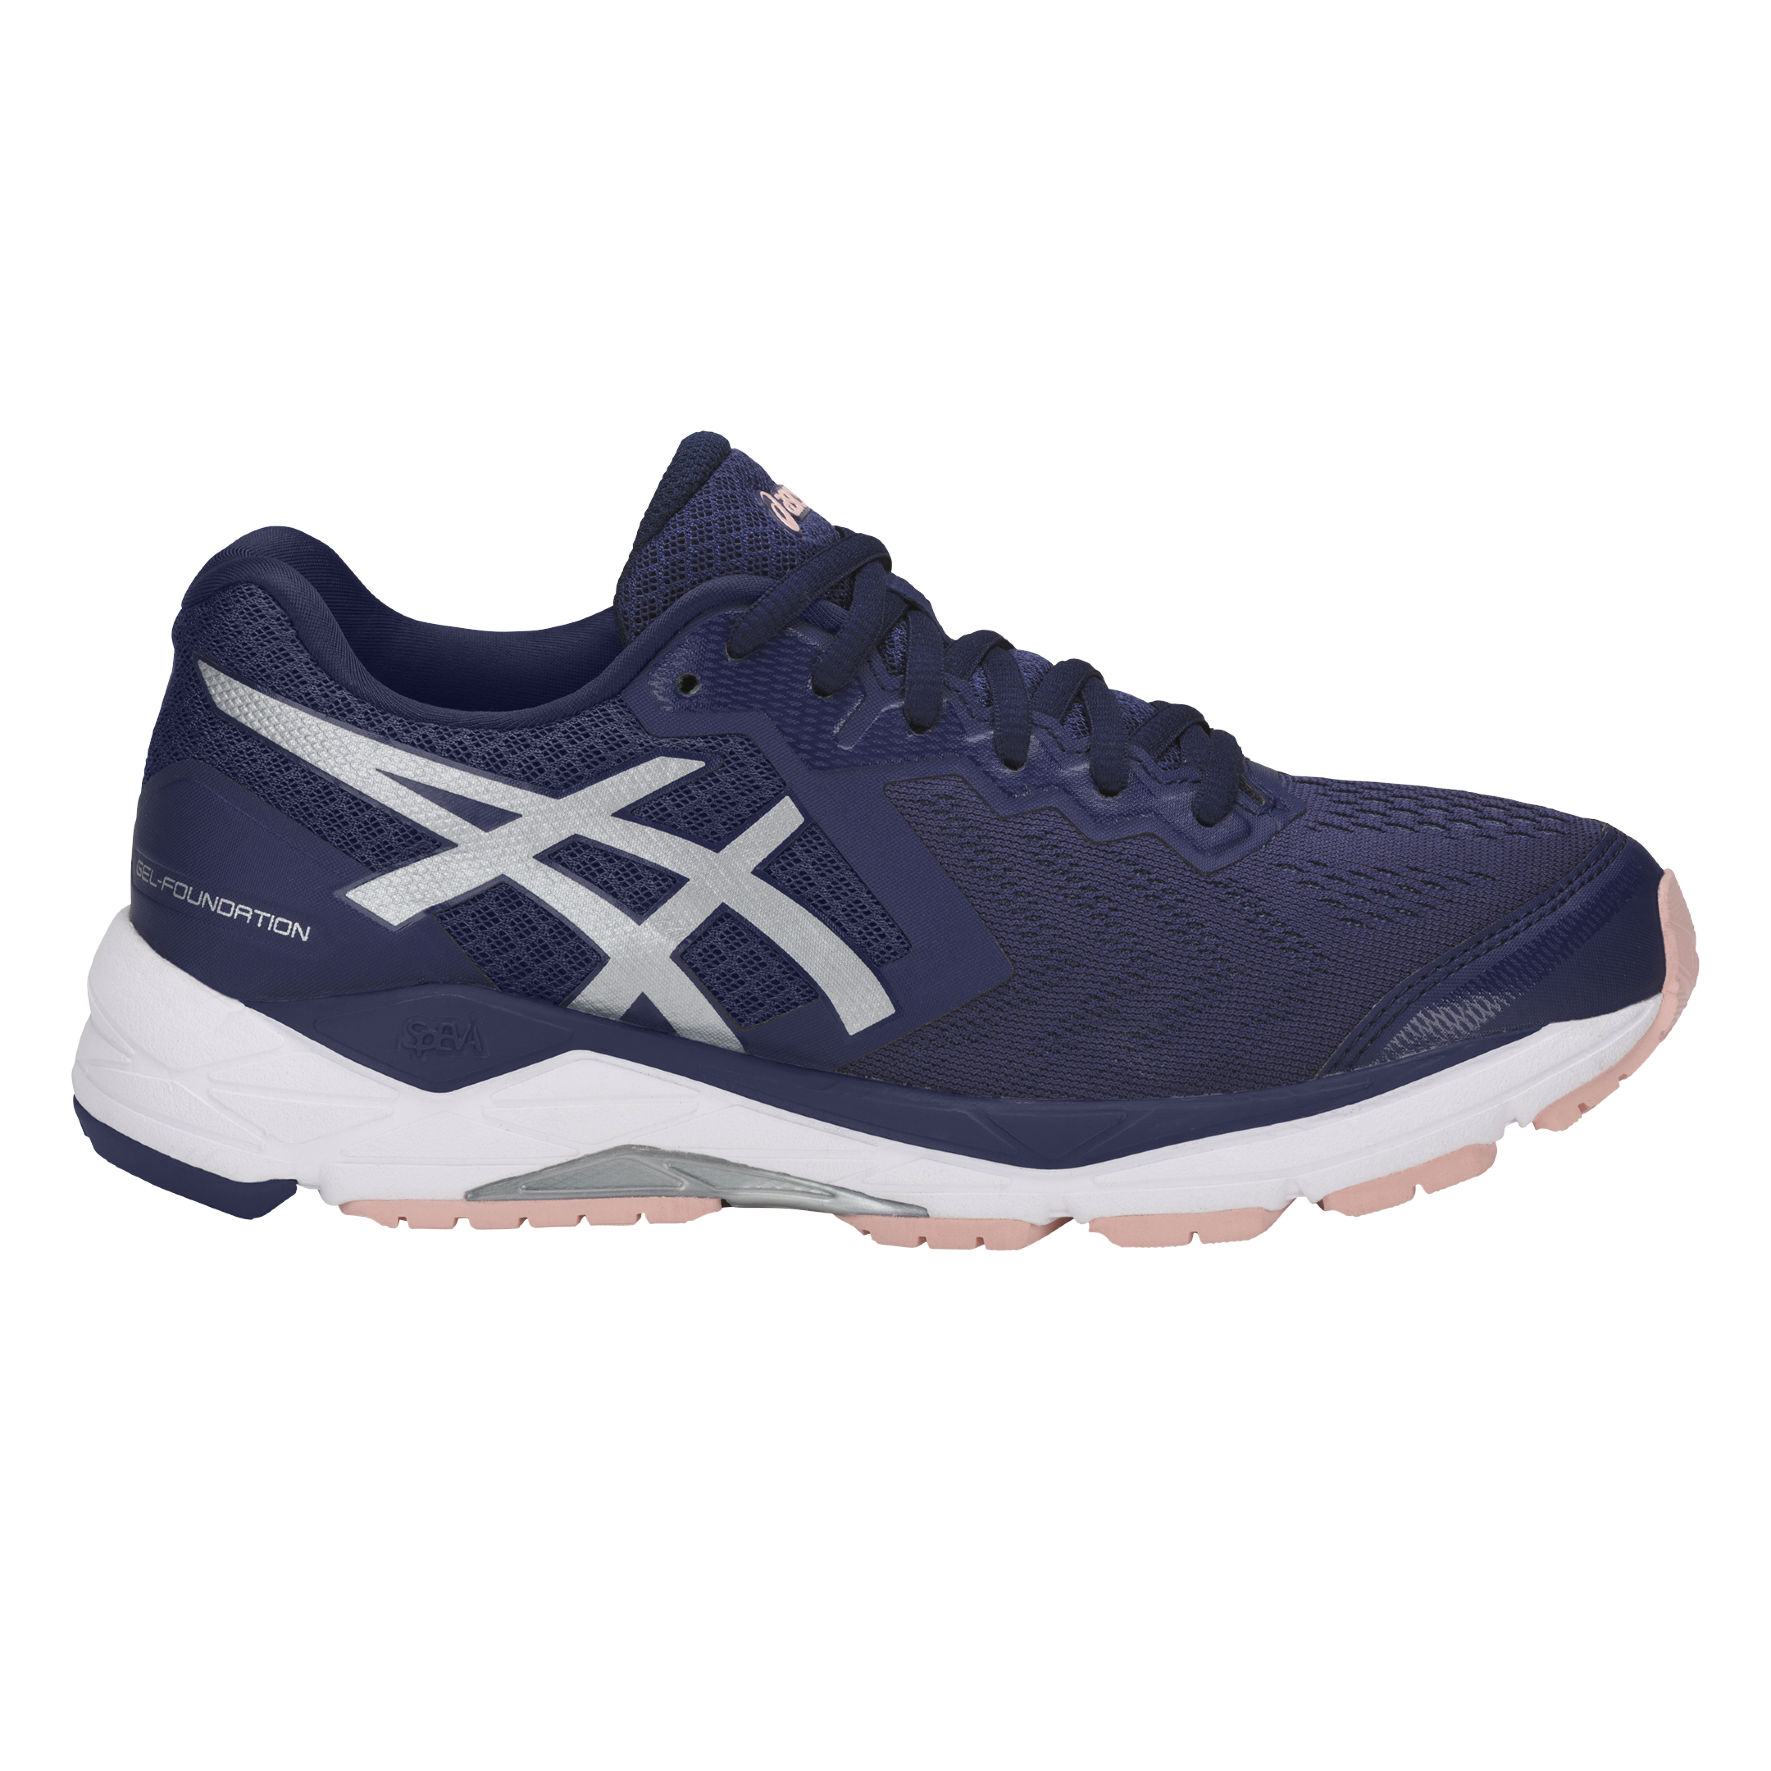 Asics Lady Gel Foundation 13 in Dunkelblau